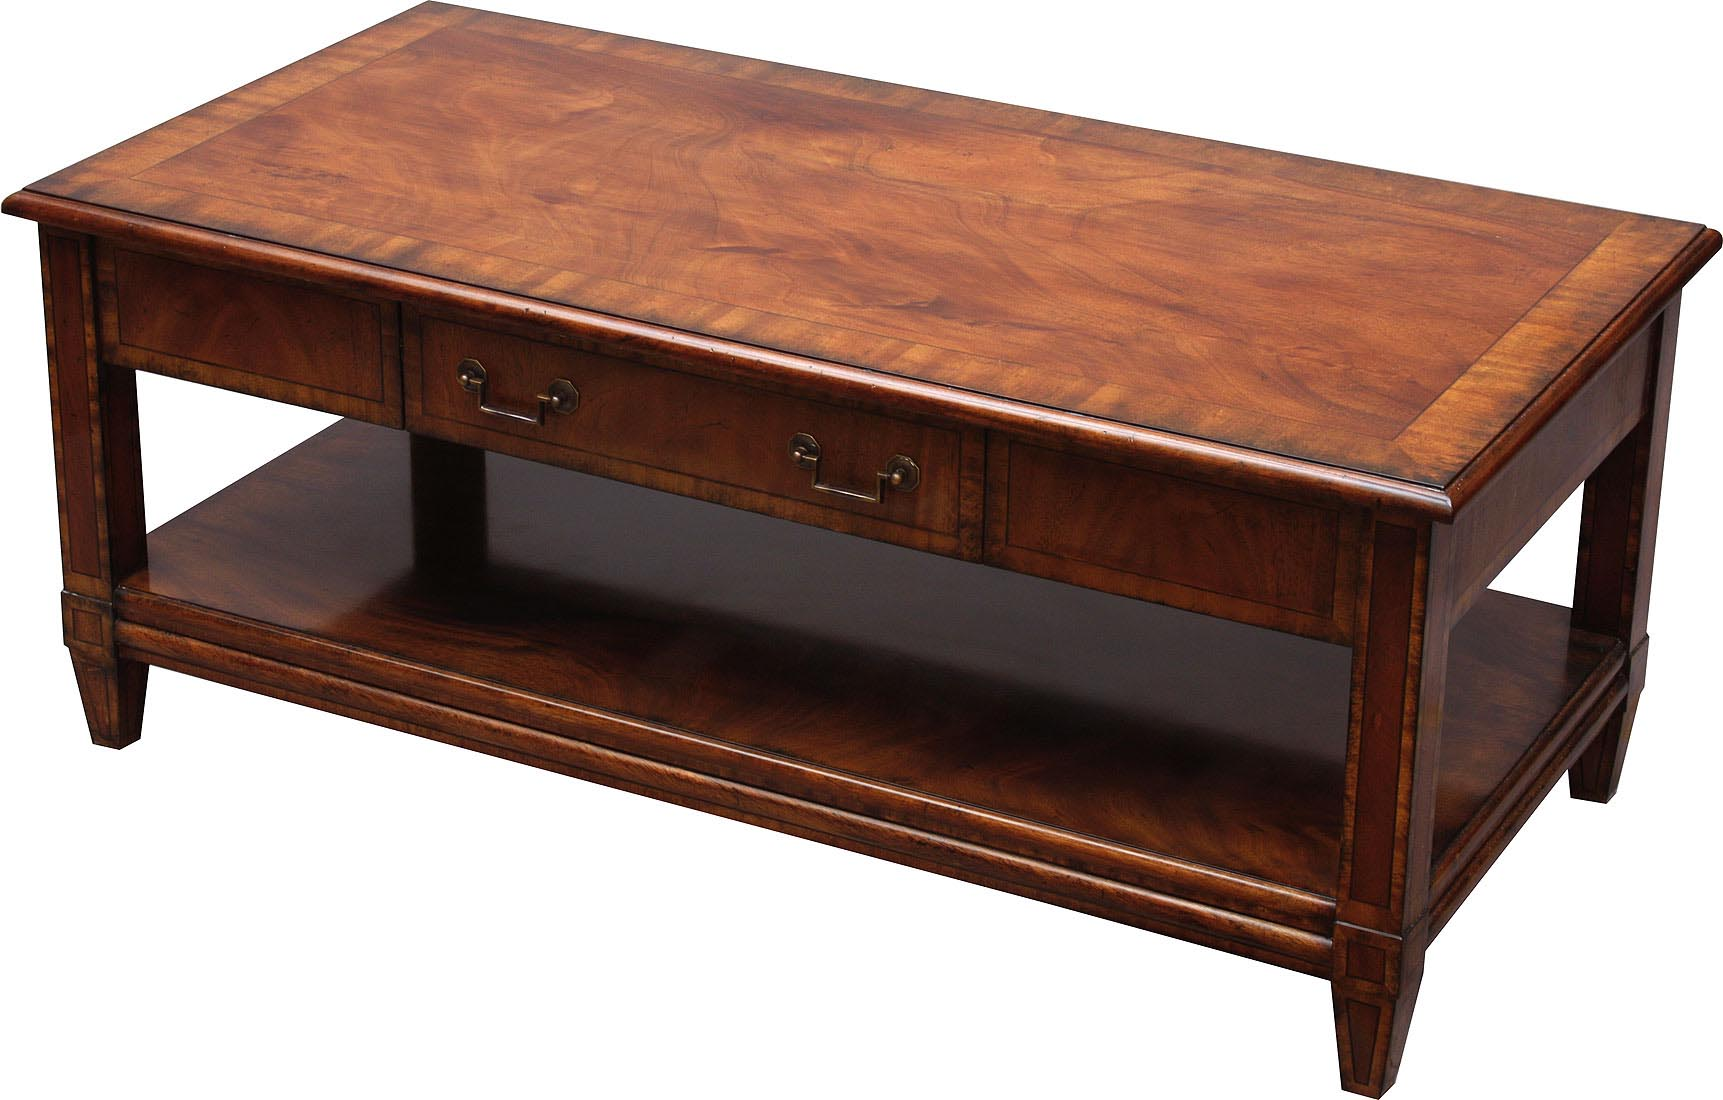 Mahogany coffee table antique coffee table design ideas for Vintage coffee table